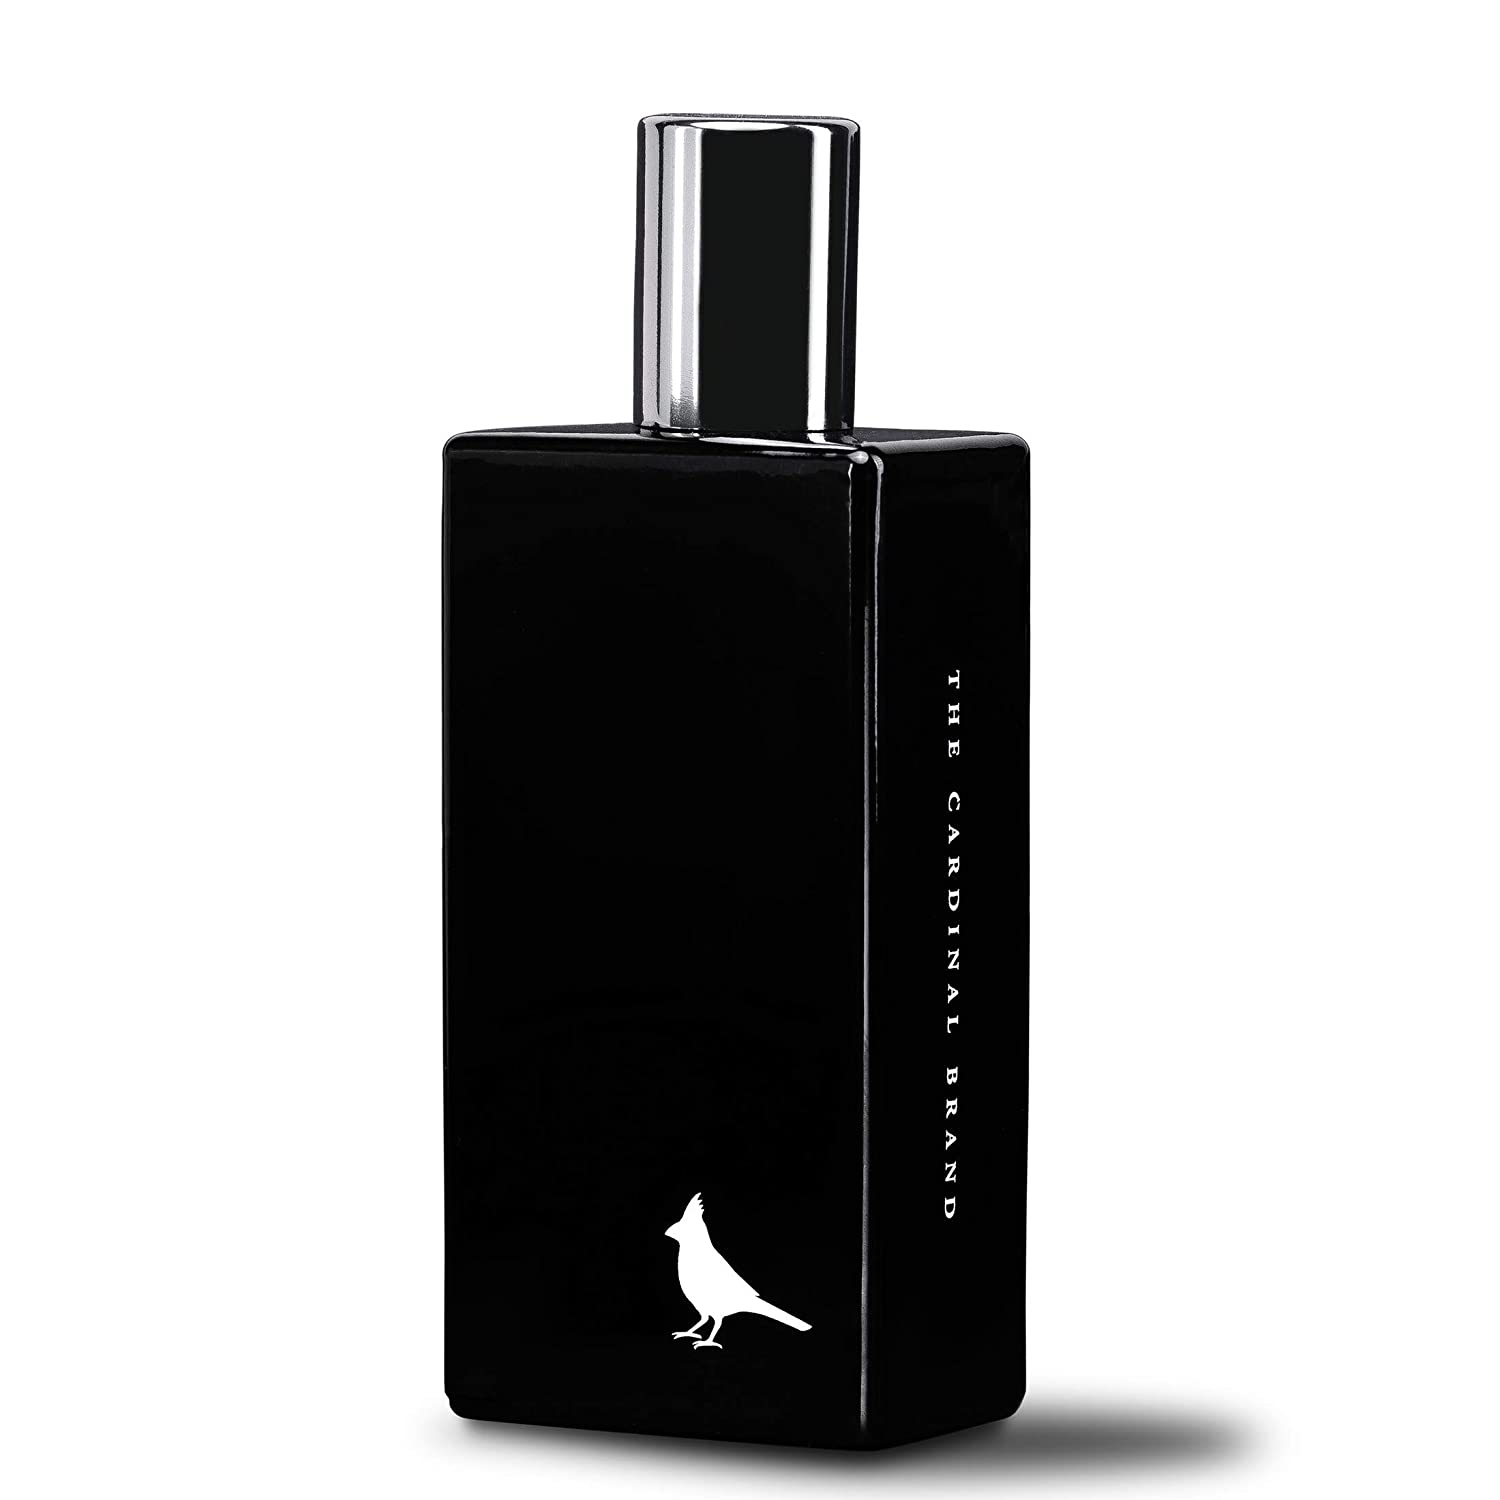 Cardinal Black Edition Cologne